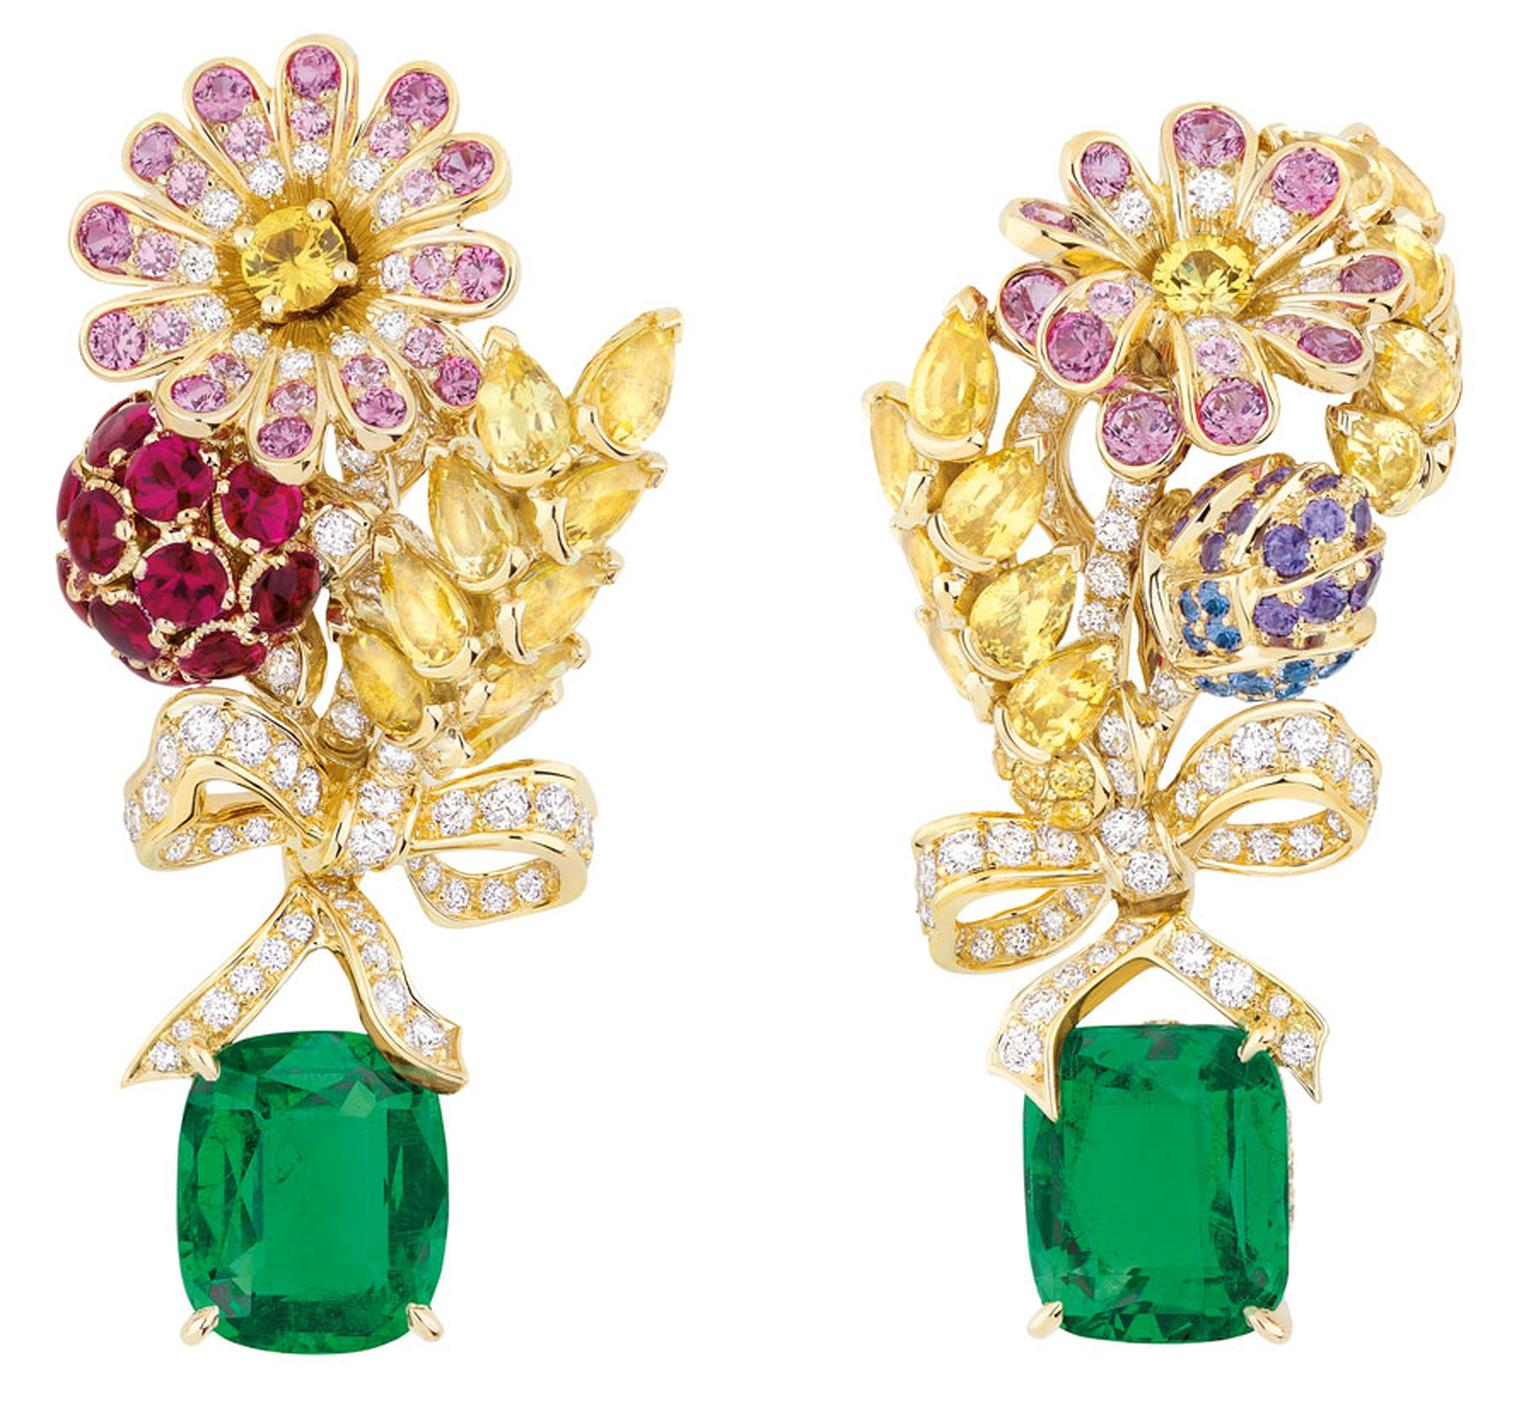 Dior-PRECIEUSES-CHAMPETRE-EARRINGS-EMERALD